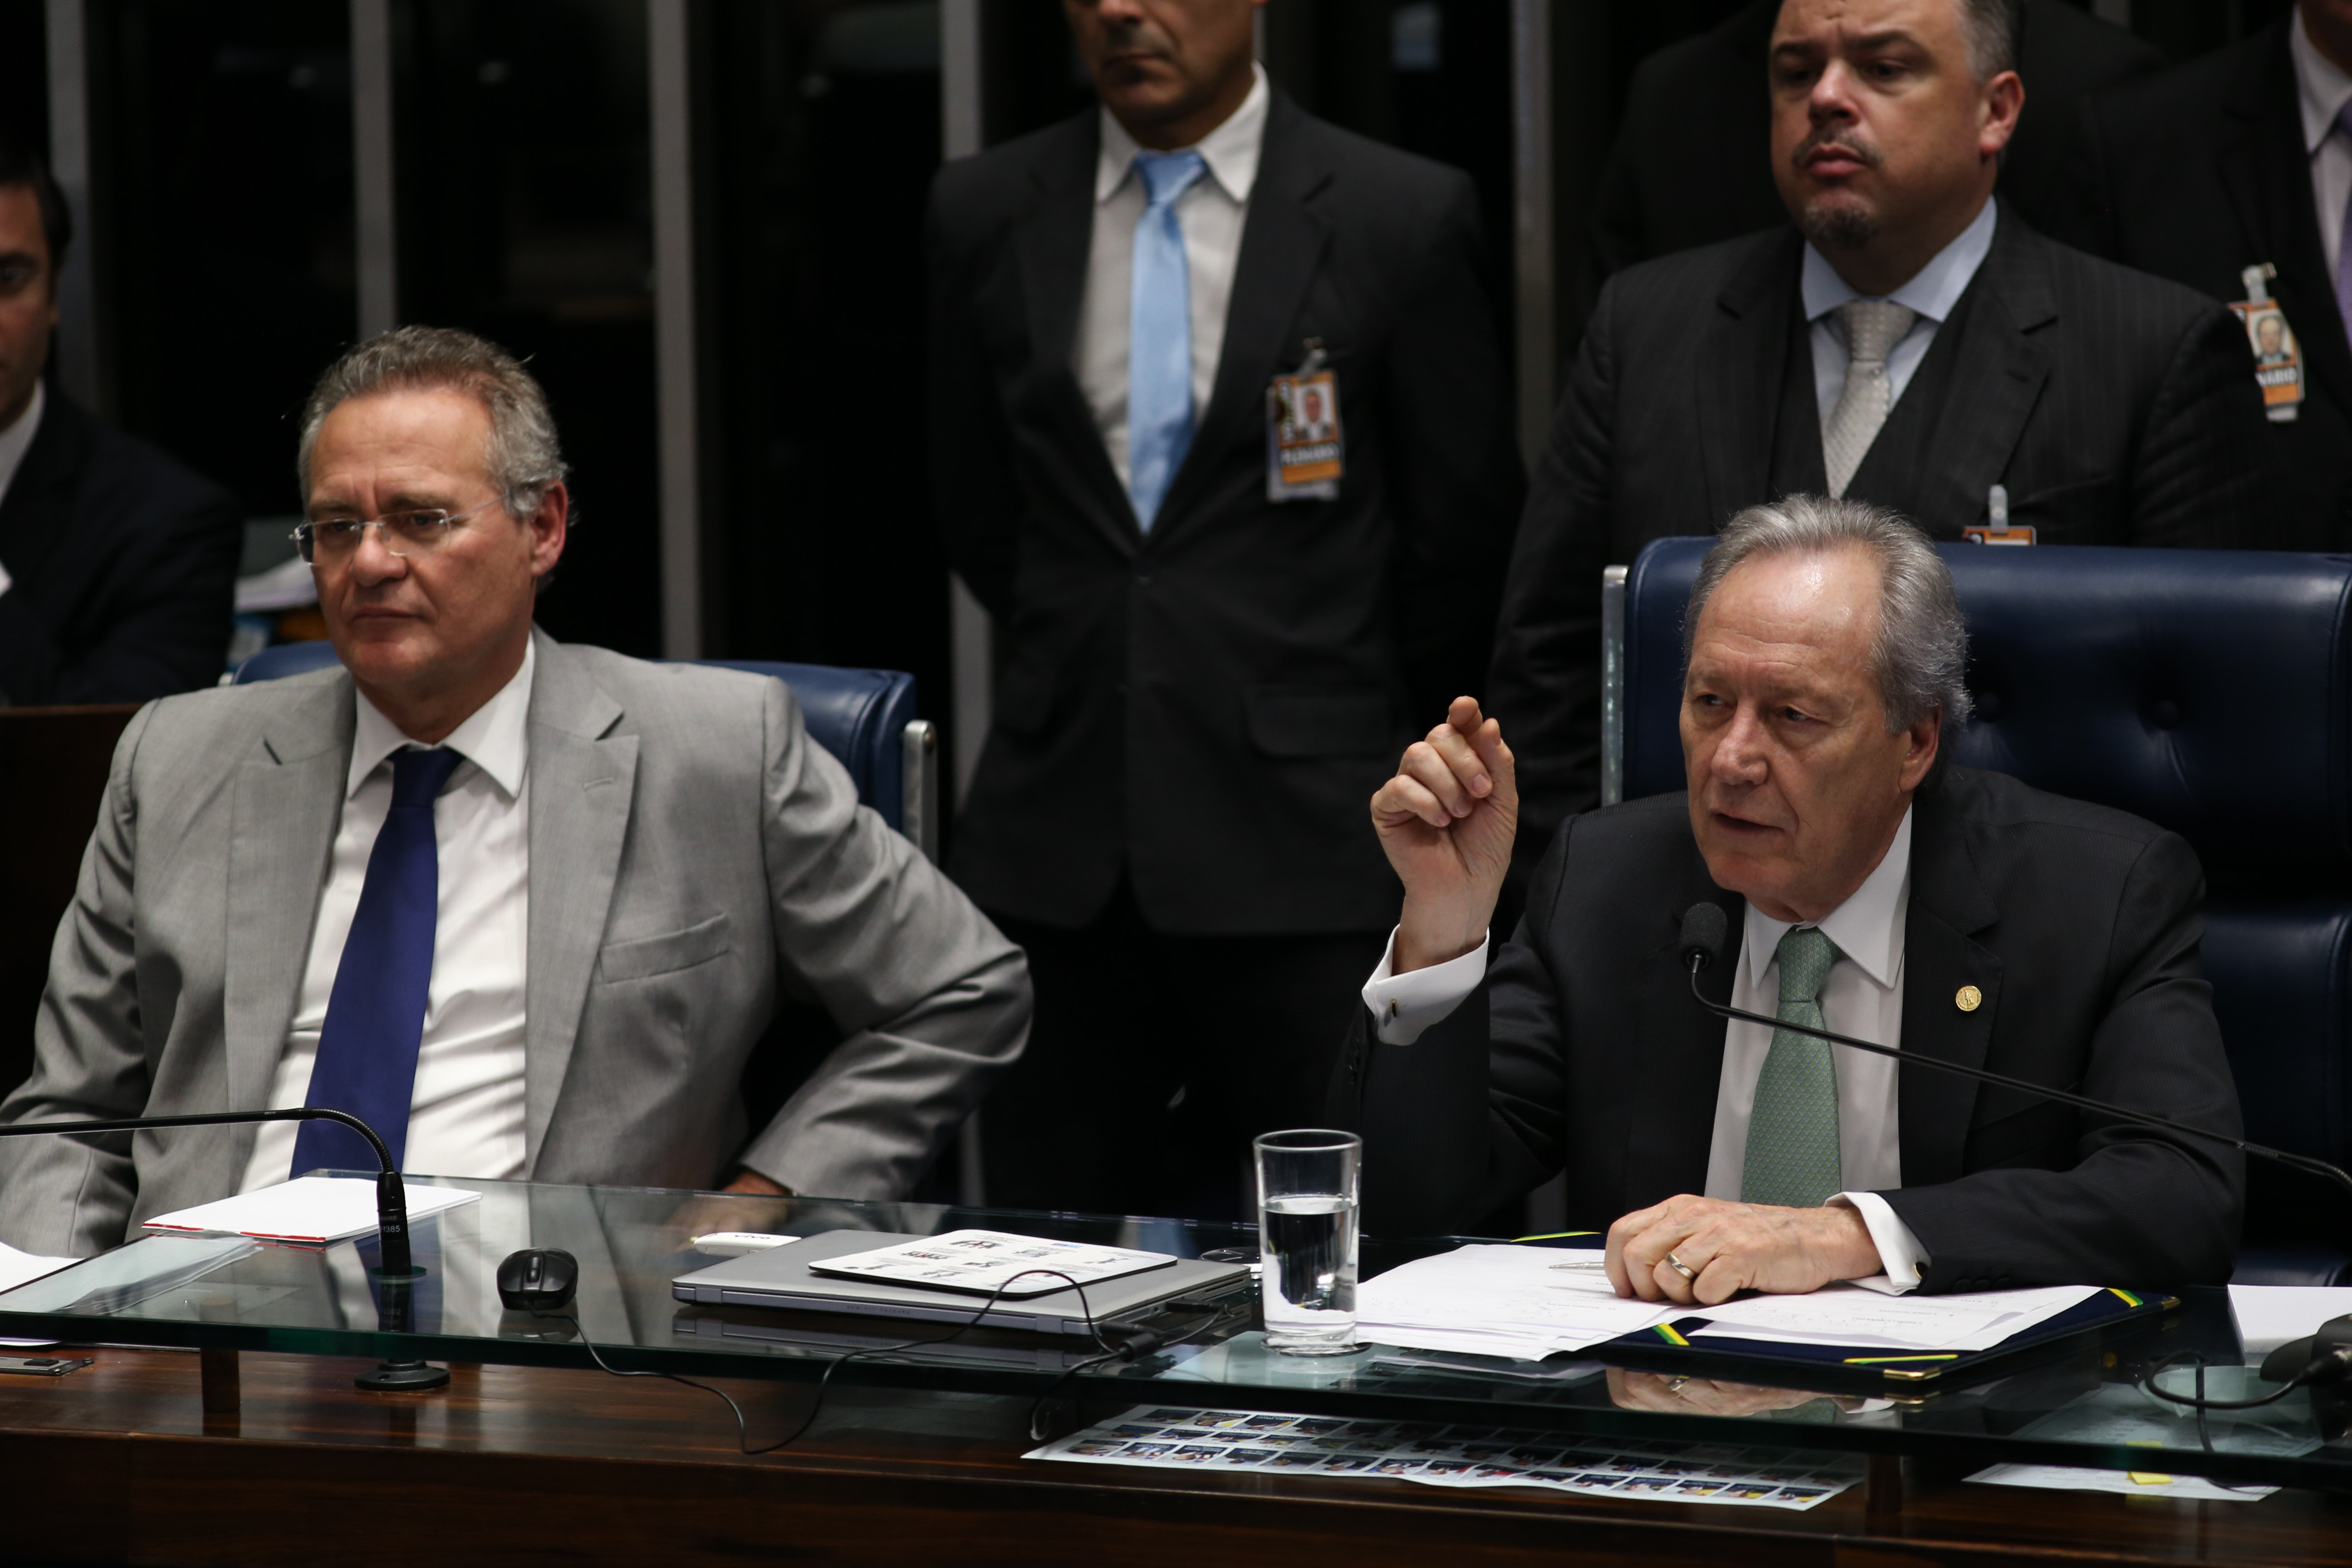 Brasília - Presidentes do Senado, Renan Calheiros, e do Supremo Tribunal Federal, Ricardo Lewandowski, durante depoimento do auditor fiscal do TCU, Antonio Carlos costa D'ávila (Fabio Rodrigues Pozzebom/Agência Brasil)